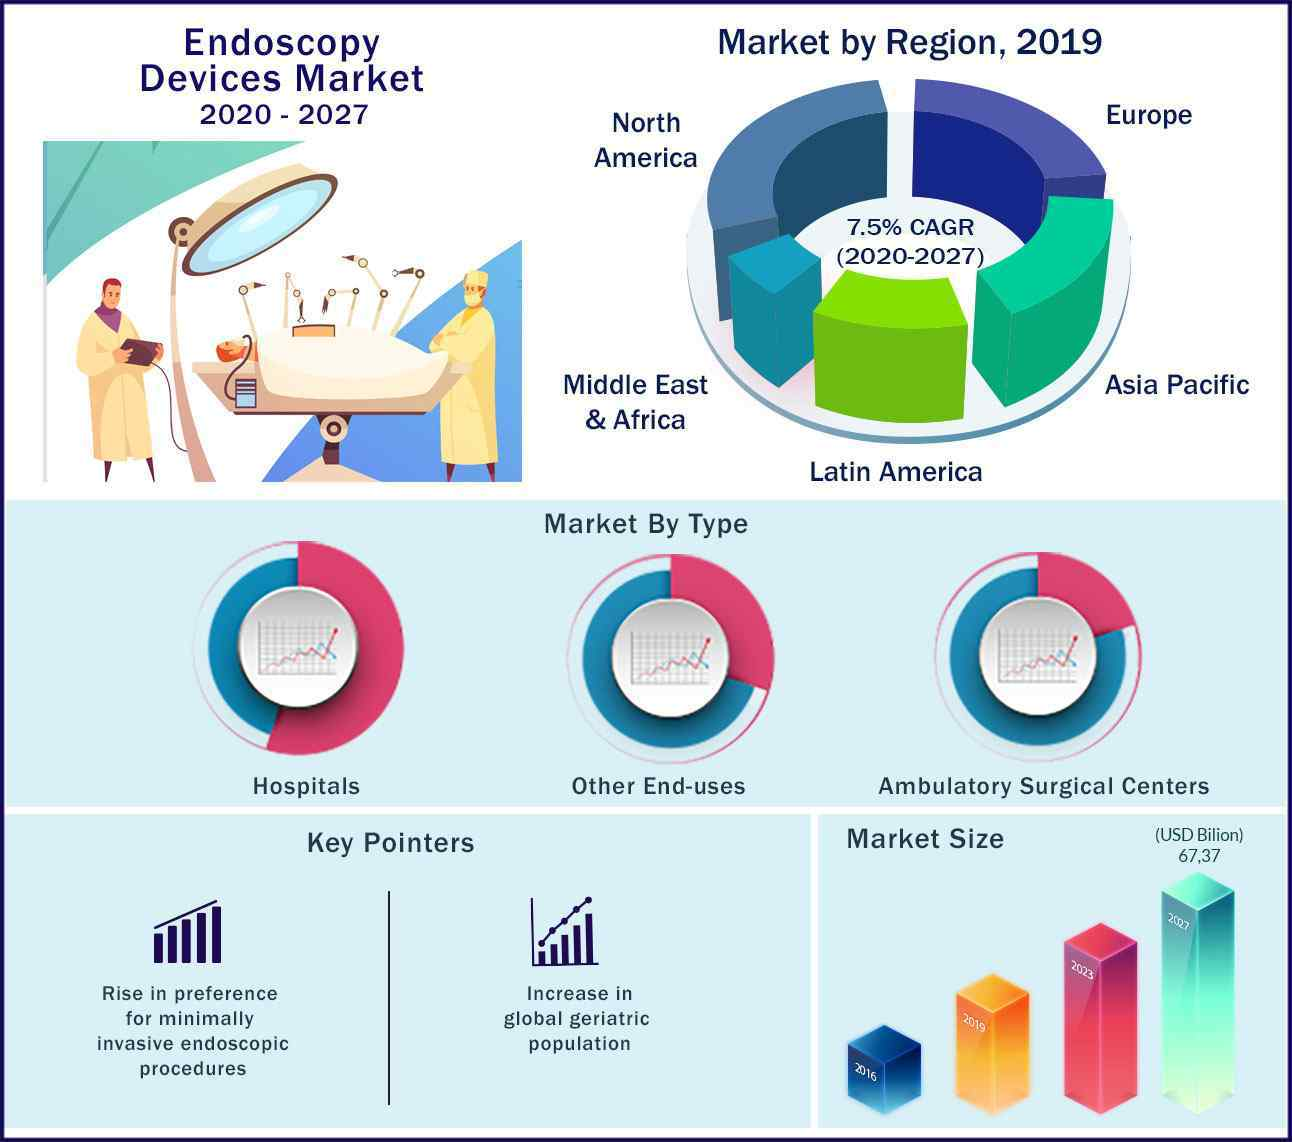 Global Endoscopy Devices Market 2020 to 2027